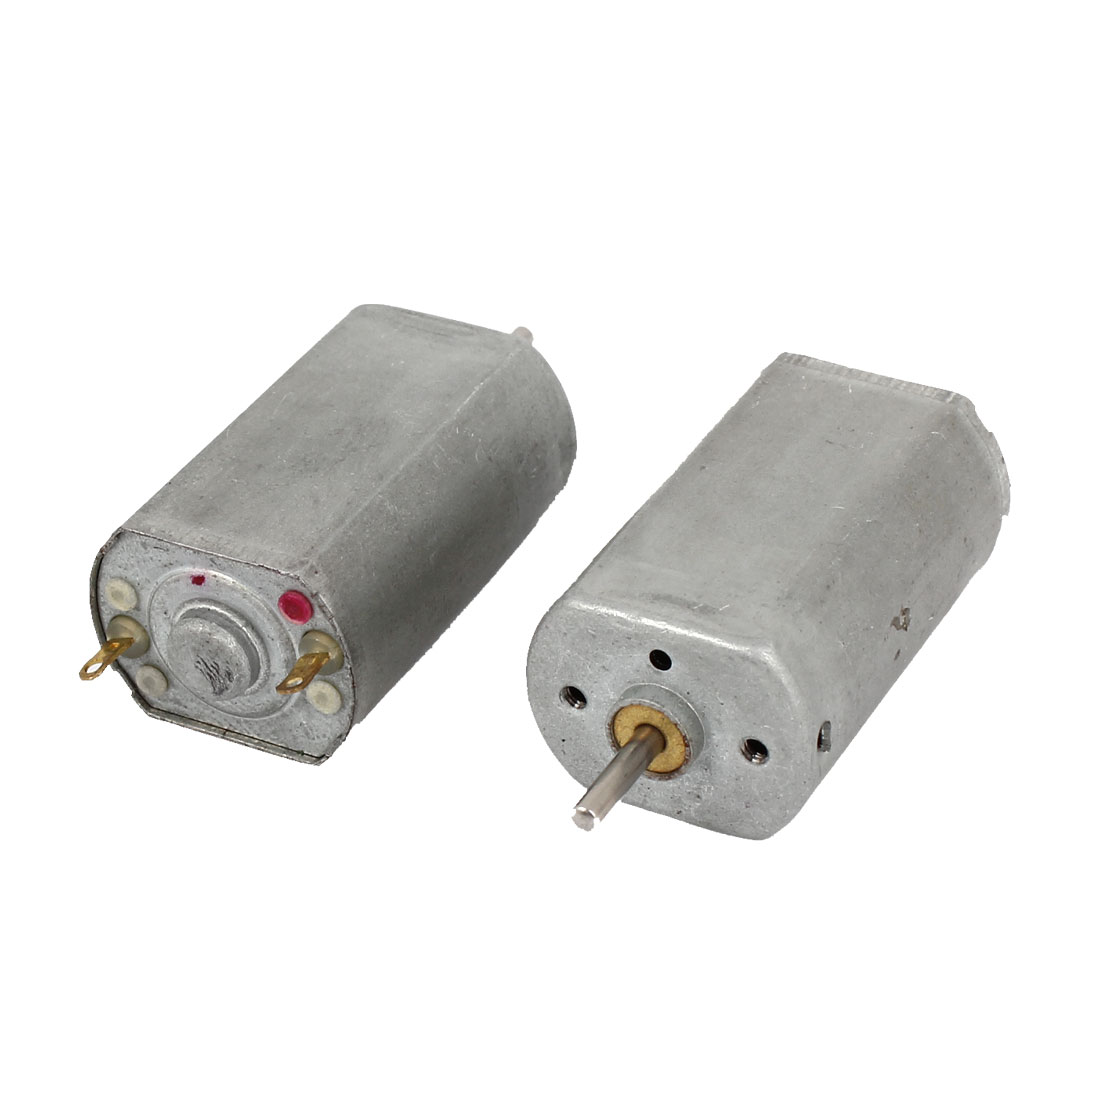 2pcs 22400R/Min Output DC 1.5-12V High Speed Carbon Brush Mini Micro Motor